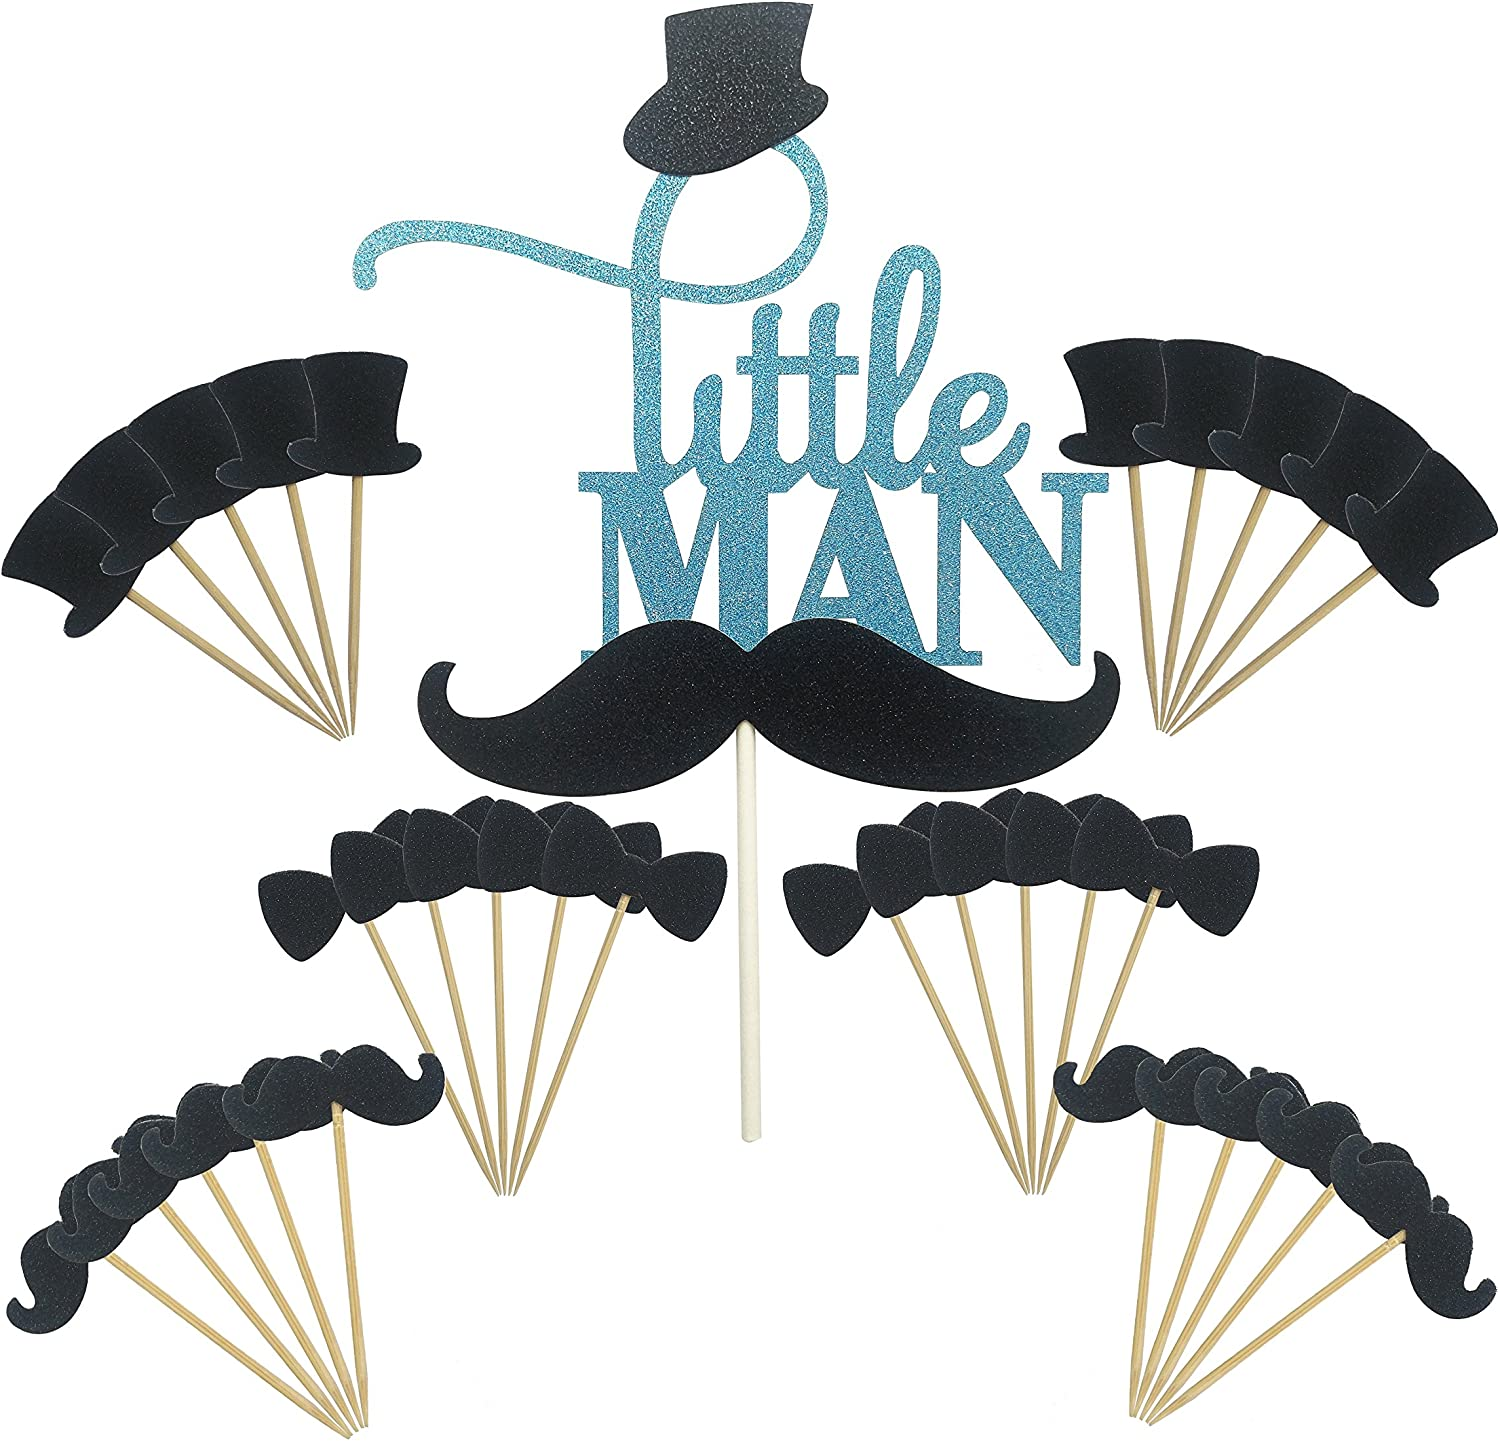 Maydolbone 31pcs Little MAN Cake Topper Mini Mustache Hat Bowtie Cupcake Picks For Baby Shower Birthday Party Decorations Supplies